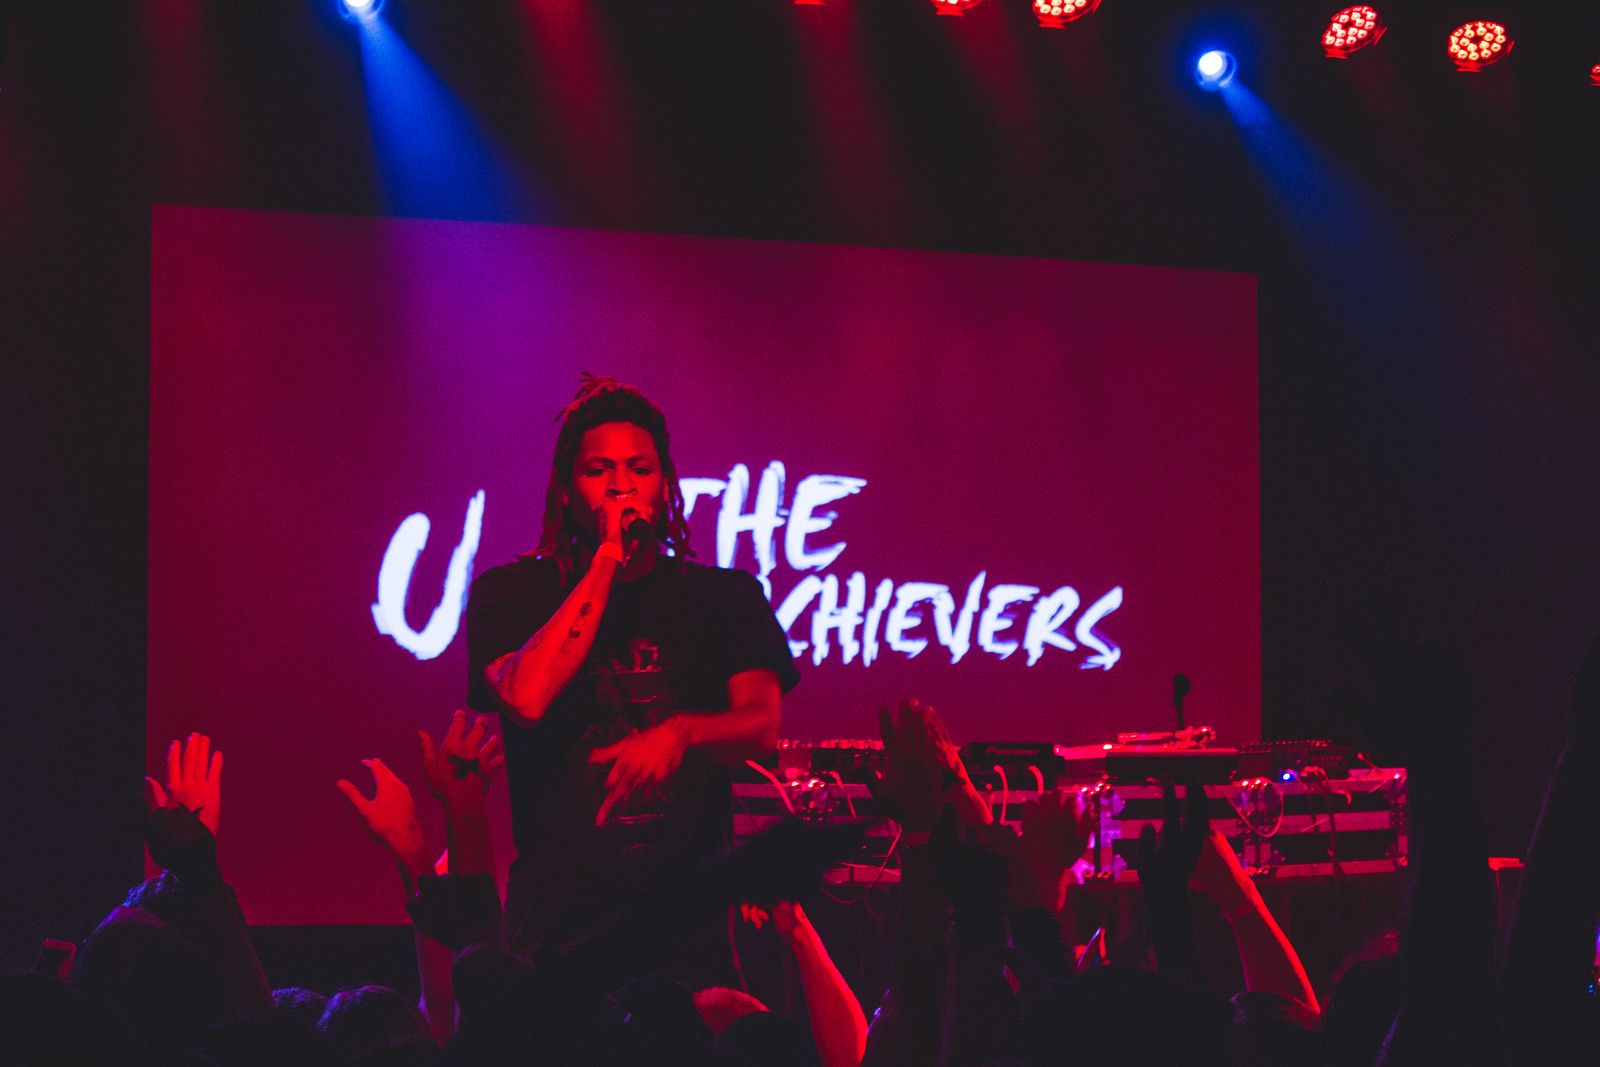 Underachievers 1 at The Waiting Room